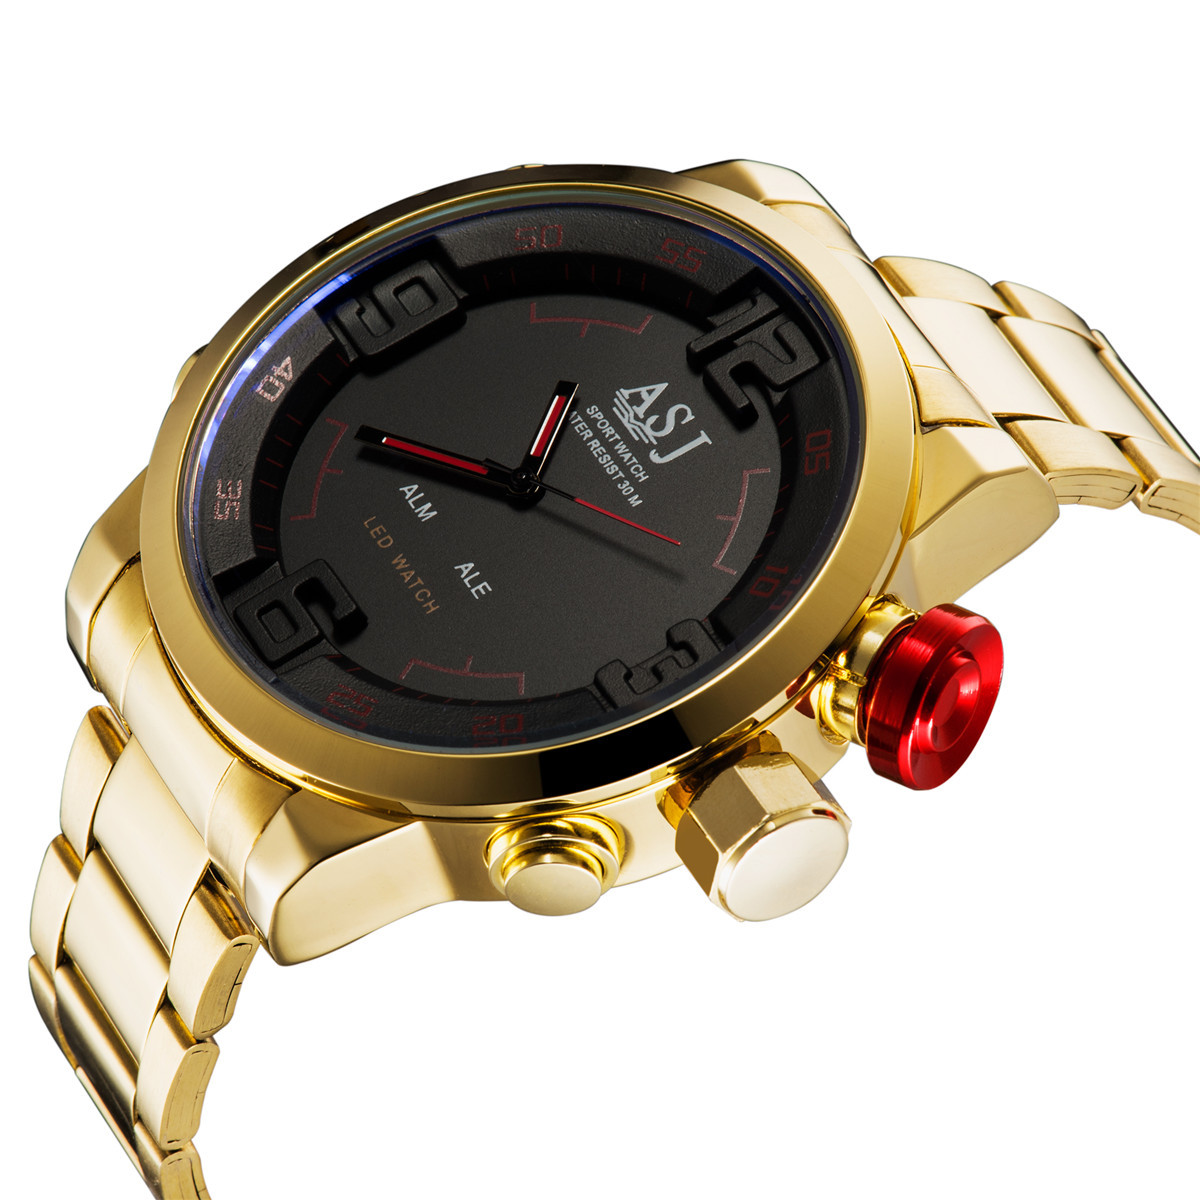 Top Brand ASJ Fashion Digital Watch Men LED Full Steel Gold Mens Sport Quartz-Watch Military Army Male Watches relogio masculino brand amuda fashion digital watch men led full steel gold mens sports quartz watch military army male watches relogio masculino